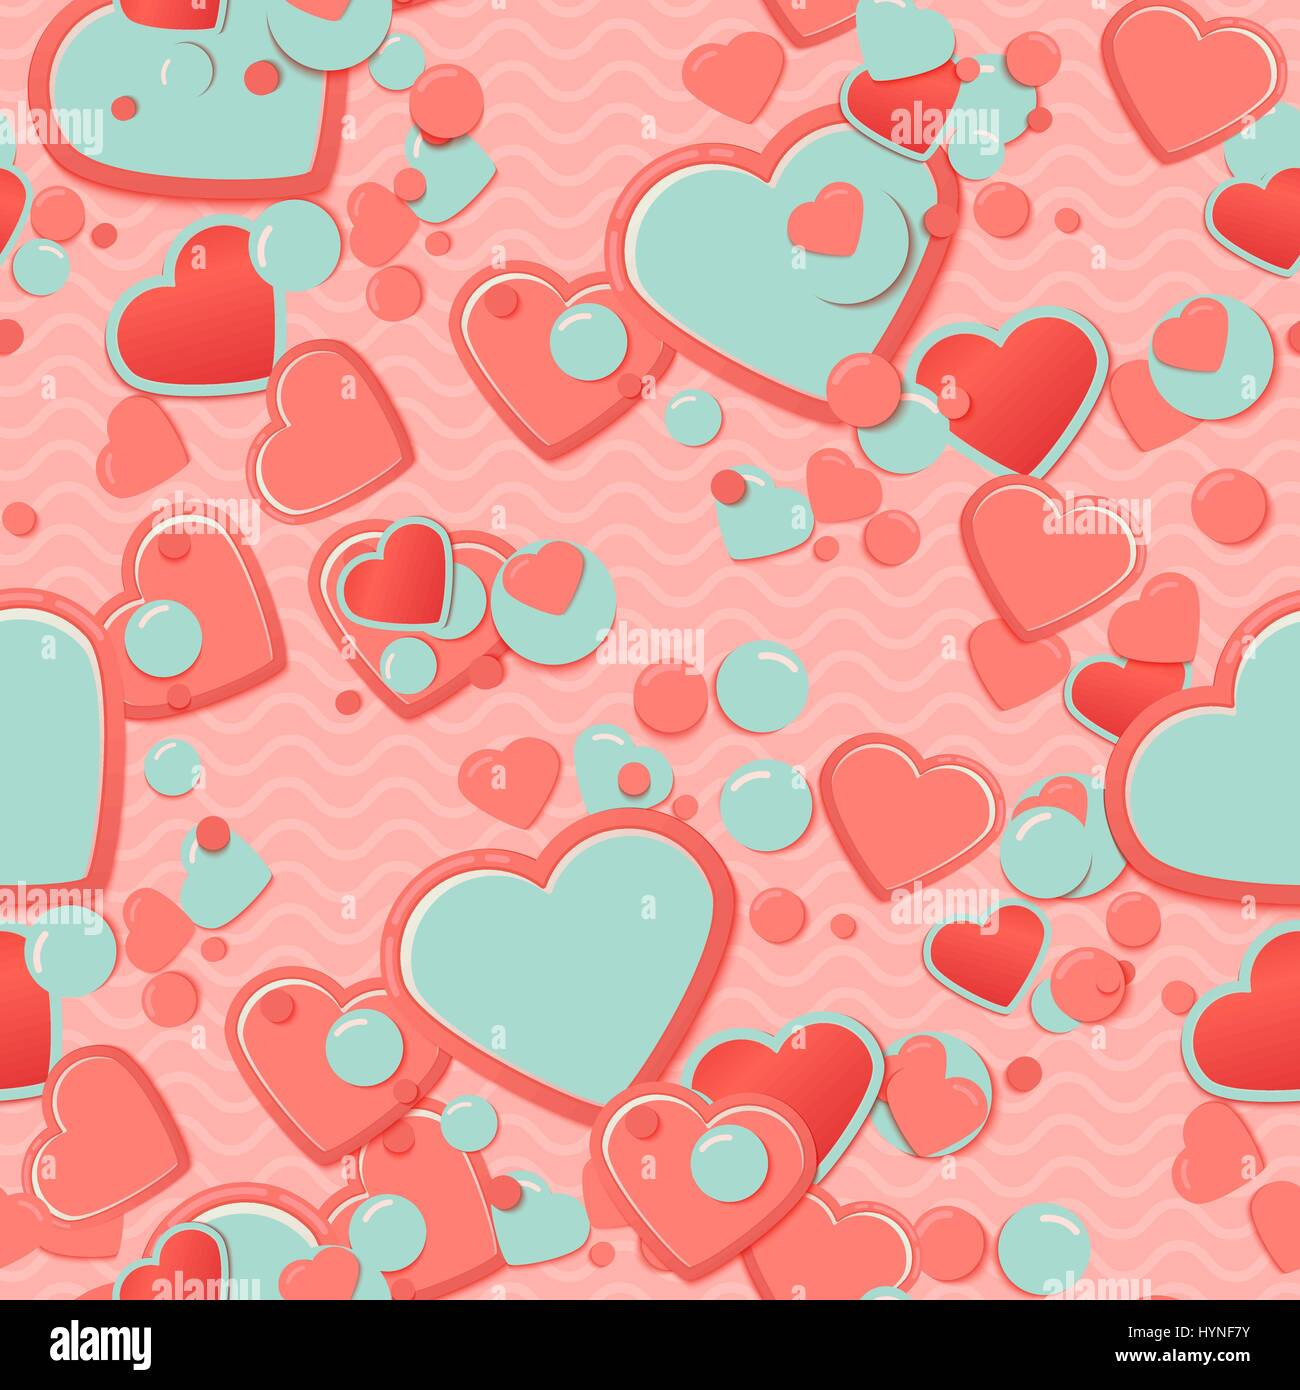 Pink Scrapbook paper, hearts with circles and waves. Valentines Day Greeting Card or postcard, scrap background. - Stock Vector